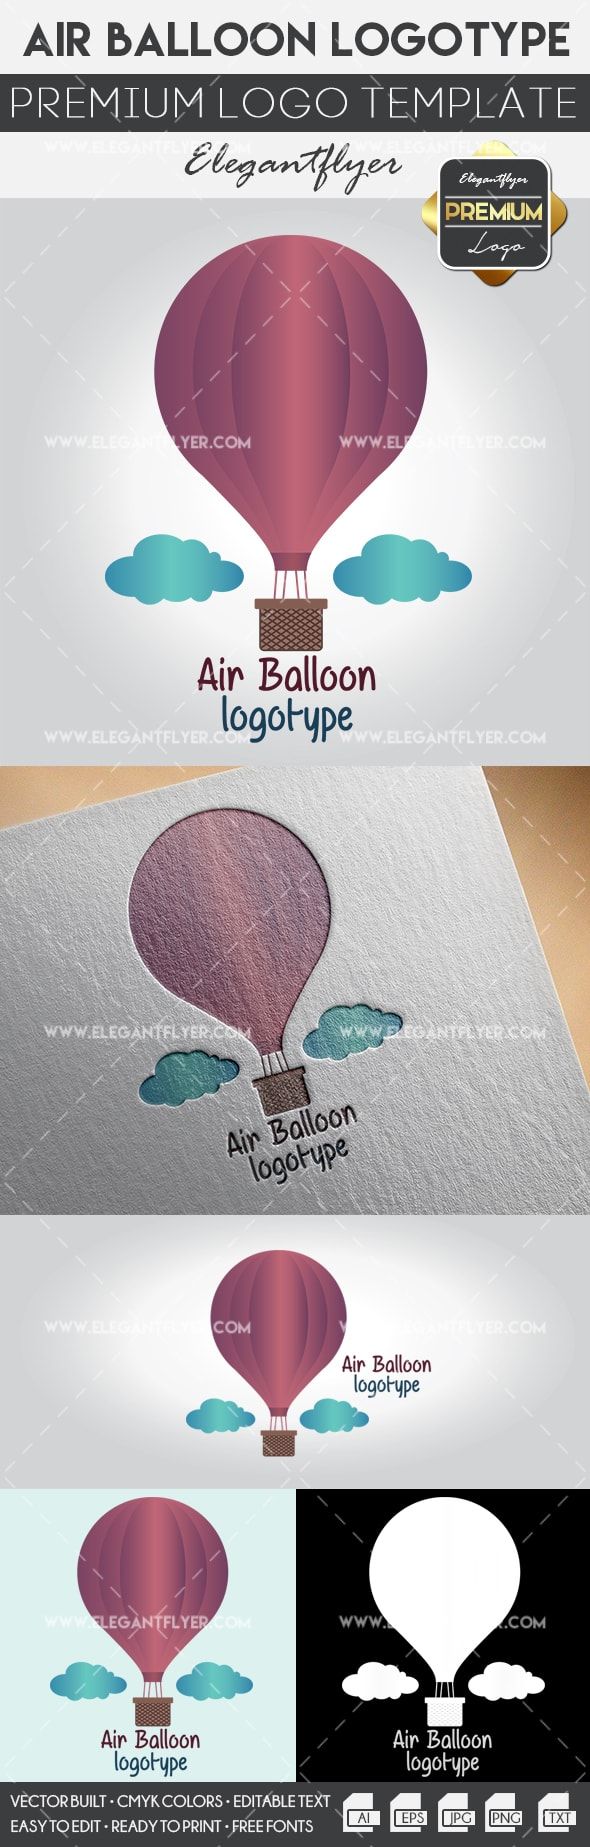 Air Balloon – Premium Logo Template